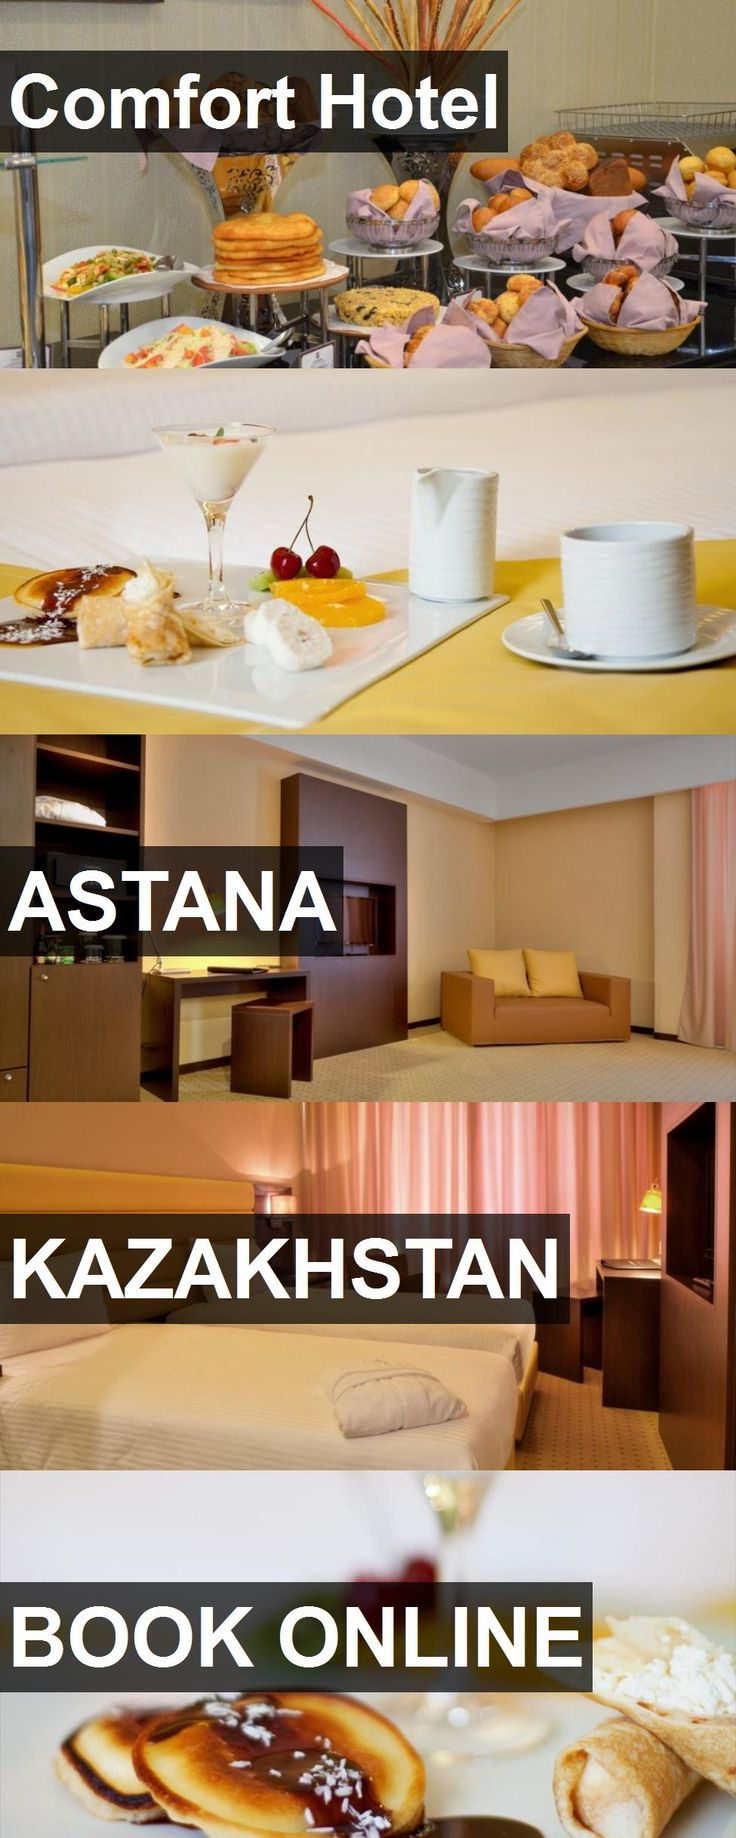 Hotel Comfort Hotel in Astana, Kazakhstan. For more information, photos, reviews and best prices please follow the link. #Kazakhstan #Astana #ComfortHotel #hotel #travel #vacation